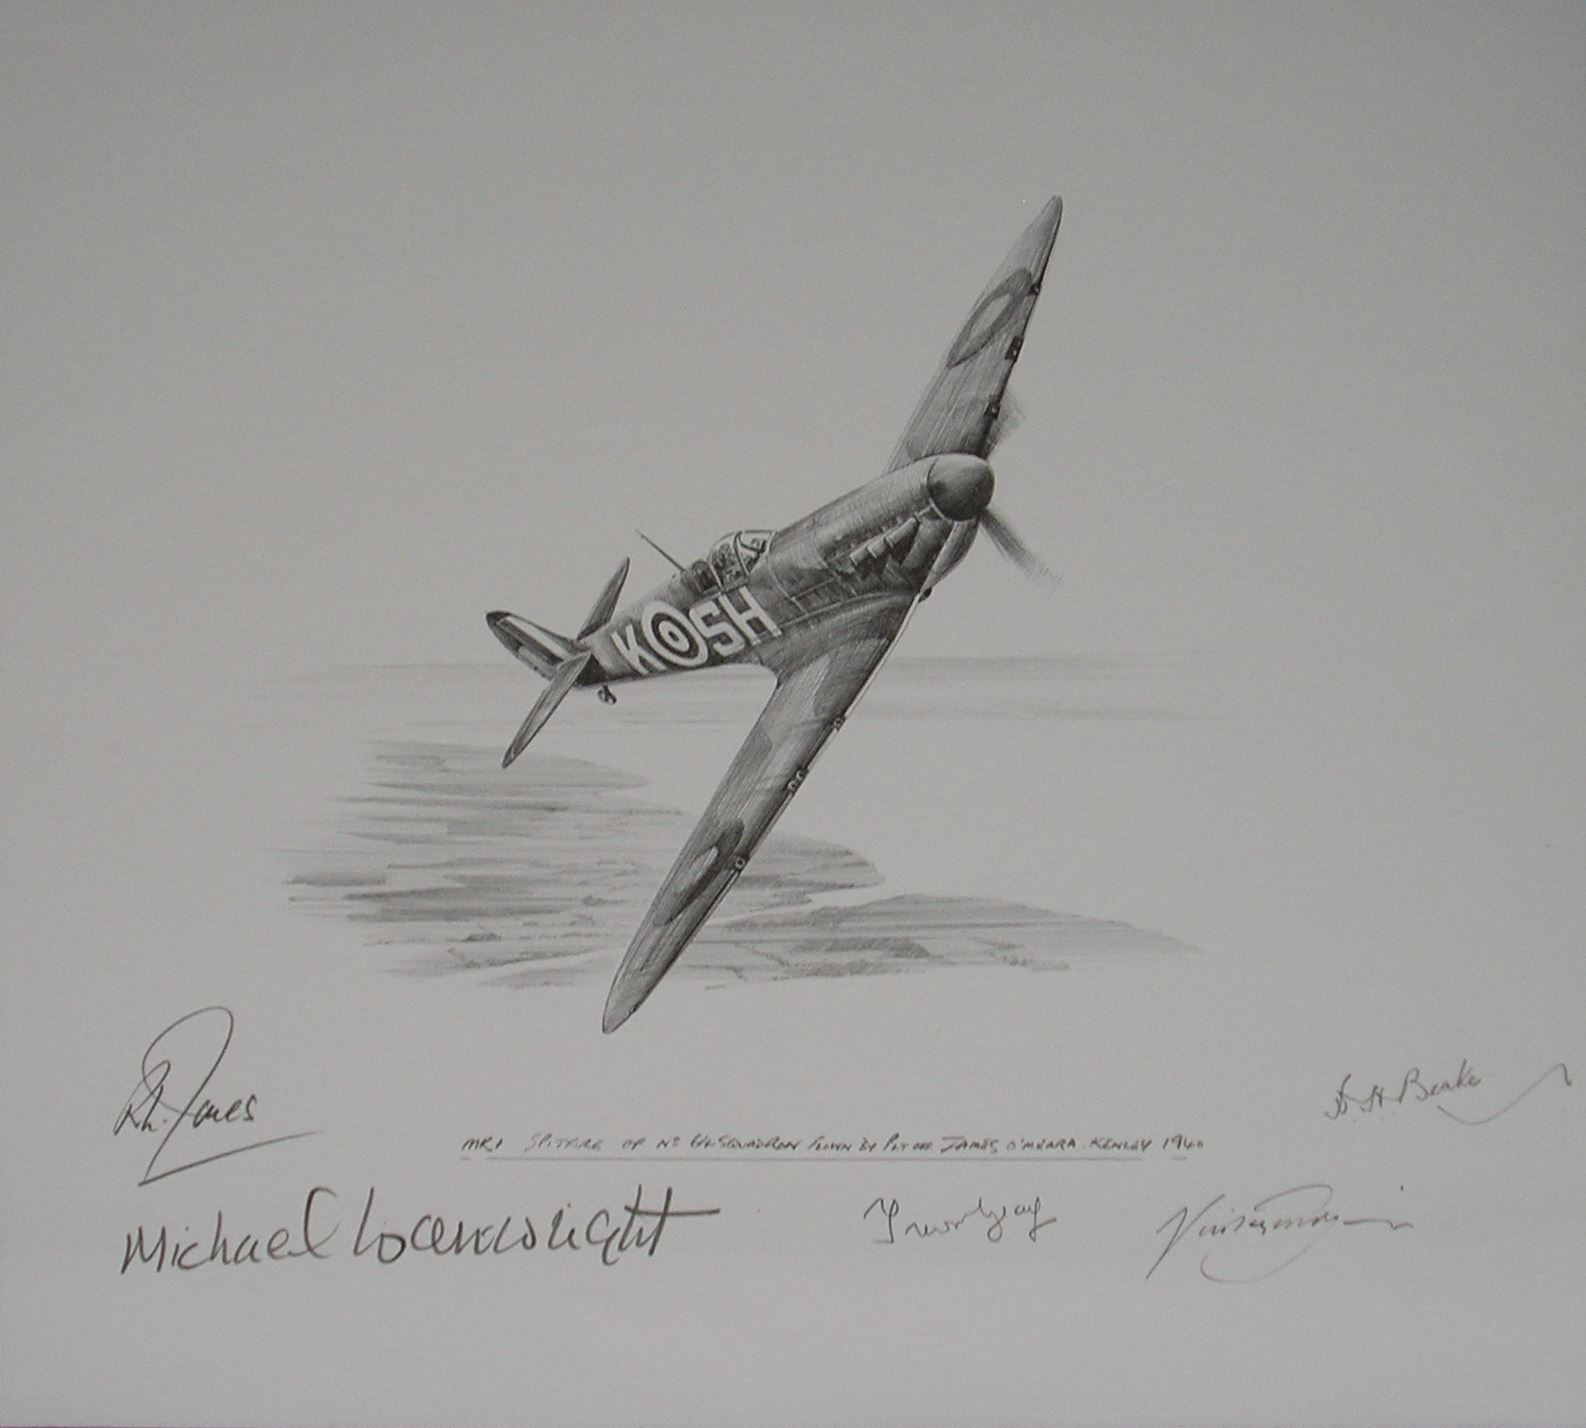 spitfire drawing. picture of spitfire 64 squadron battle britain original drawing